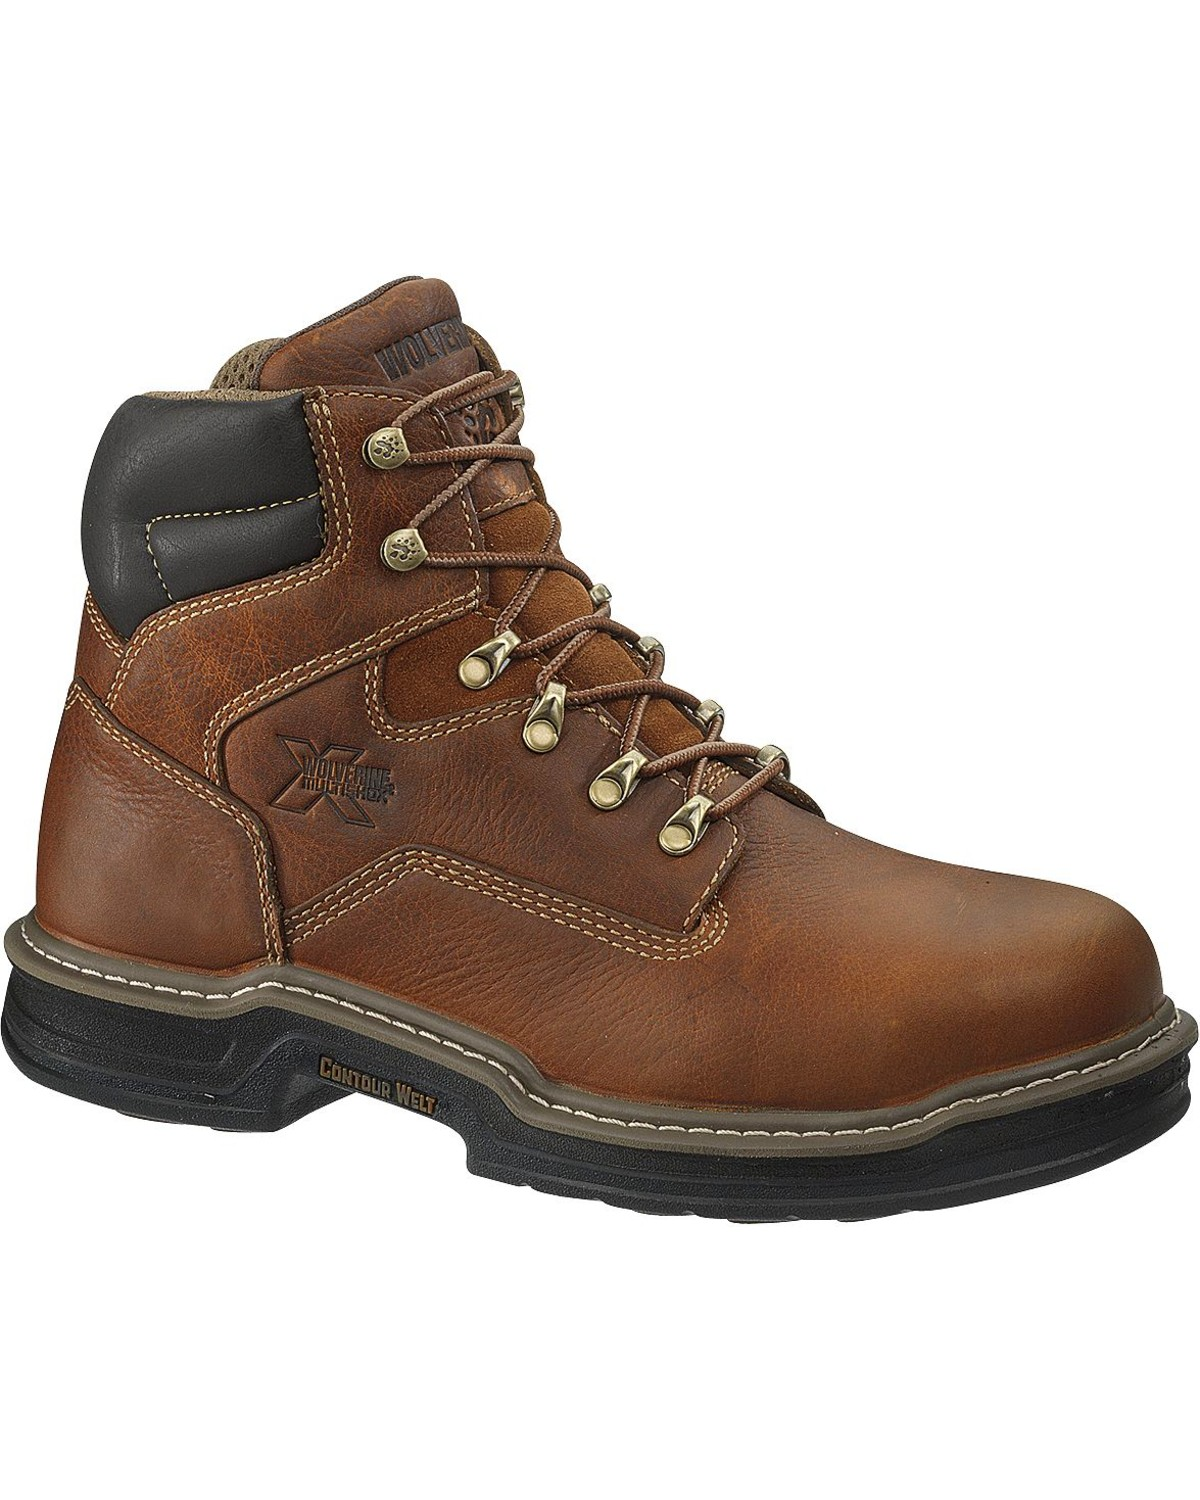 1439ae803ba Wolverine Men's Raider DuraShocks® Steel Toe EH Work Boots